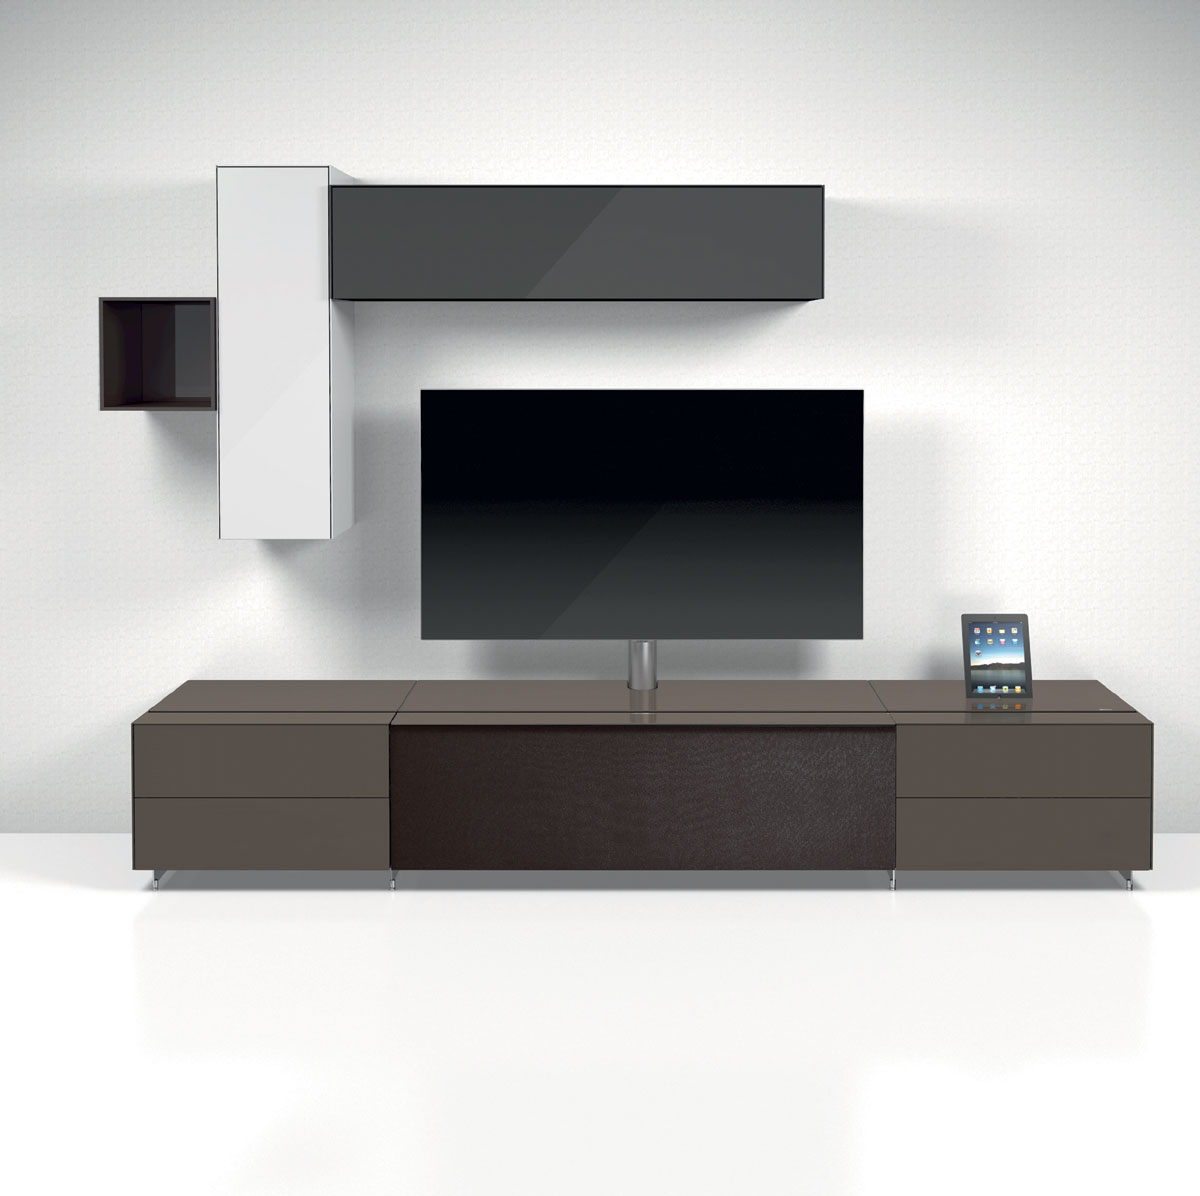 tv m bel archive seite 2 von 3 tv m bel und hifi m bel. Black Bedroom Furniture Sets. Home Design Ideas